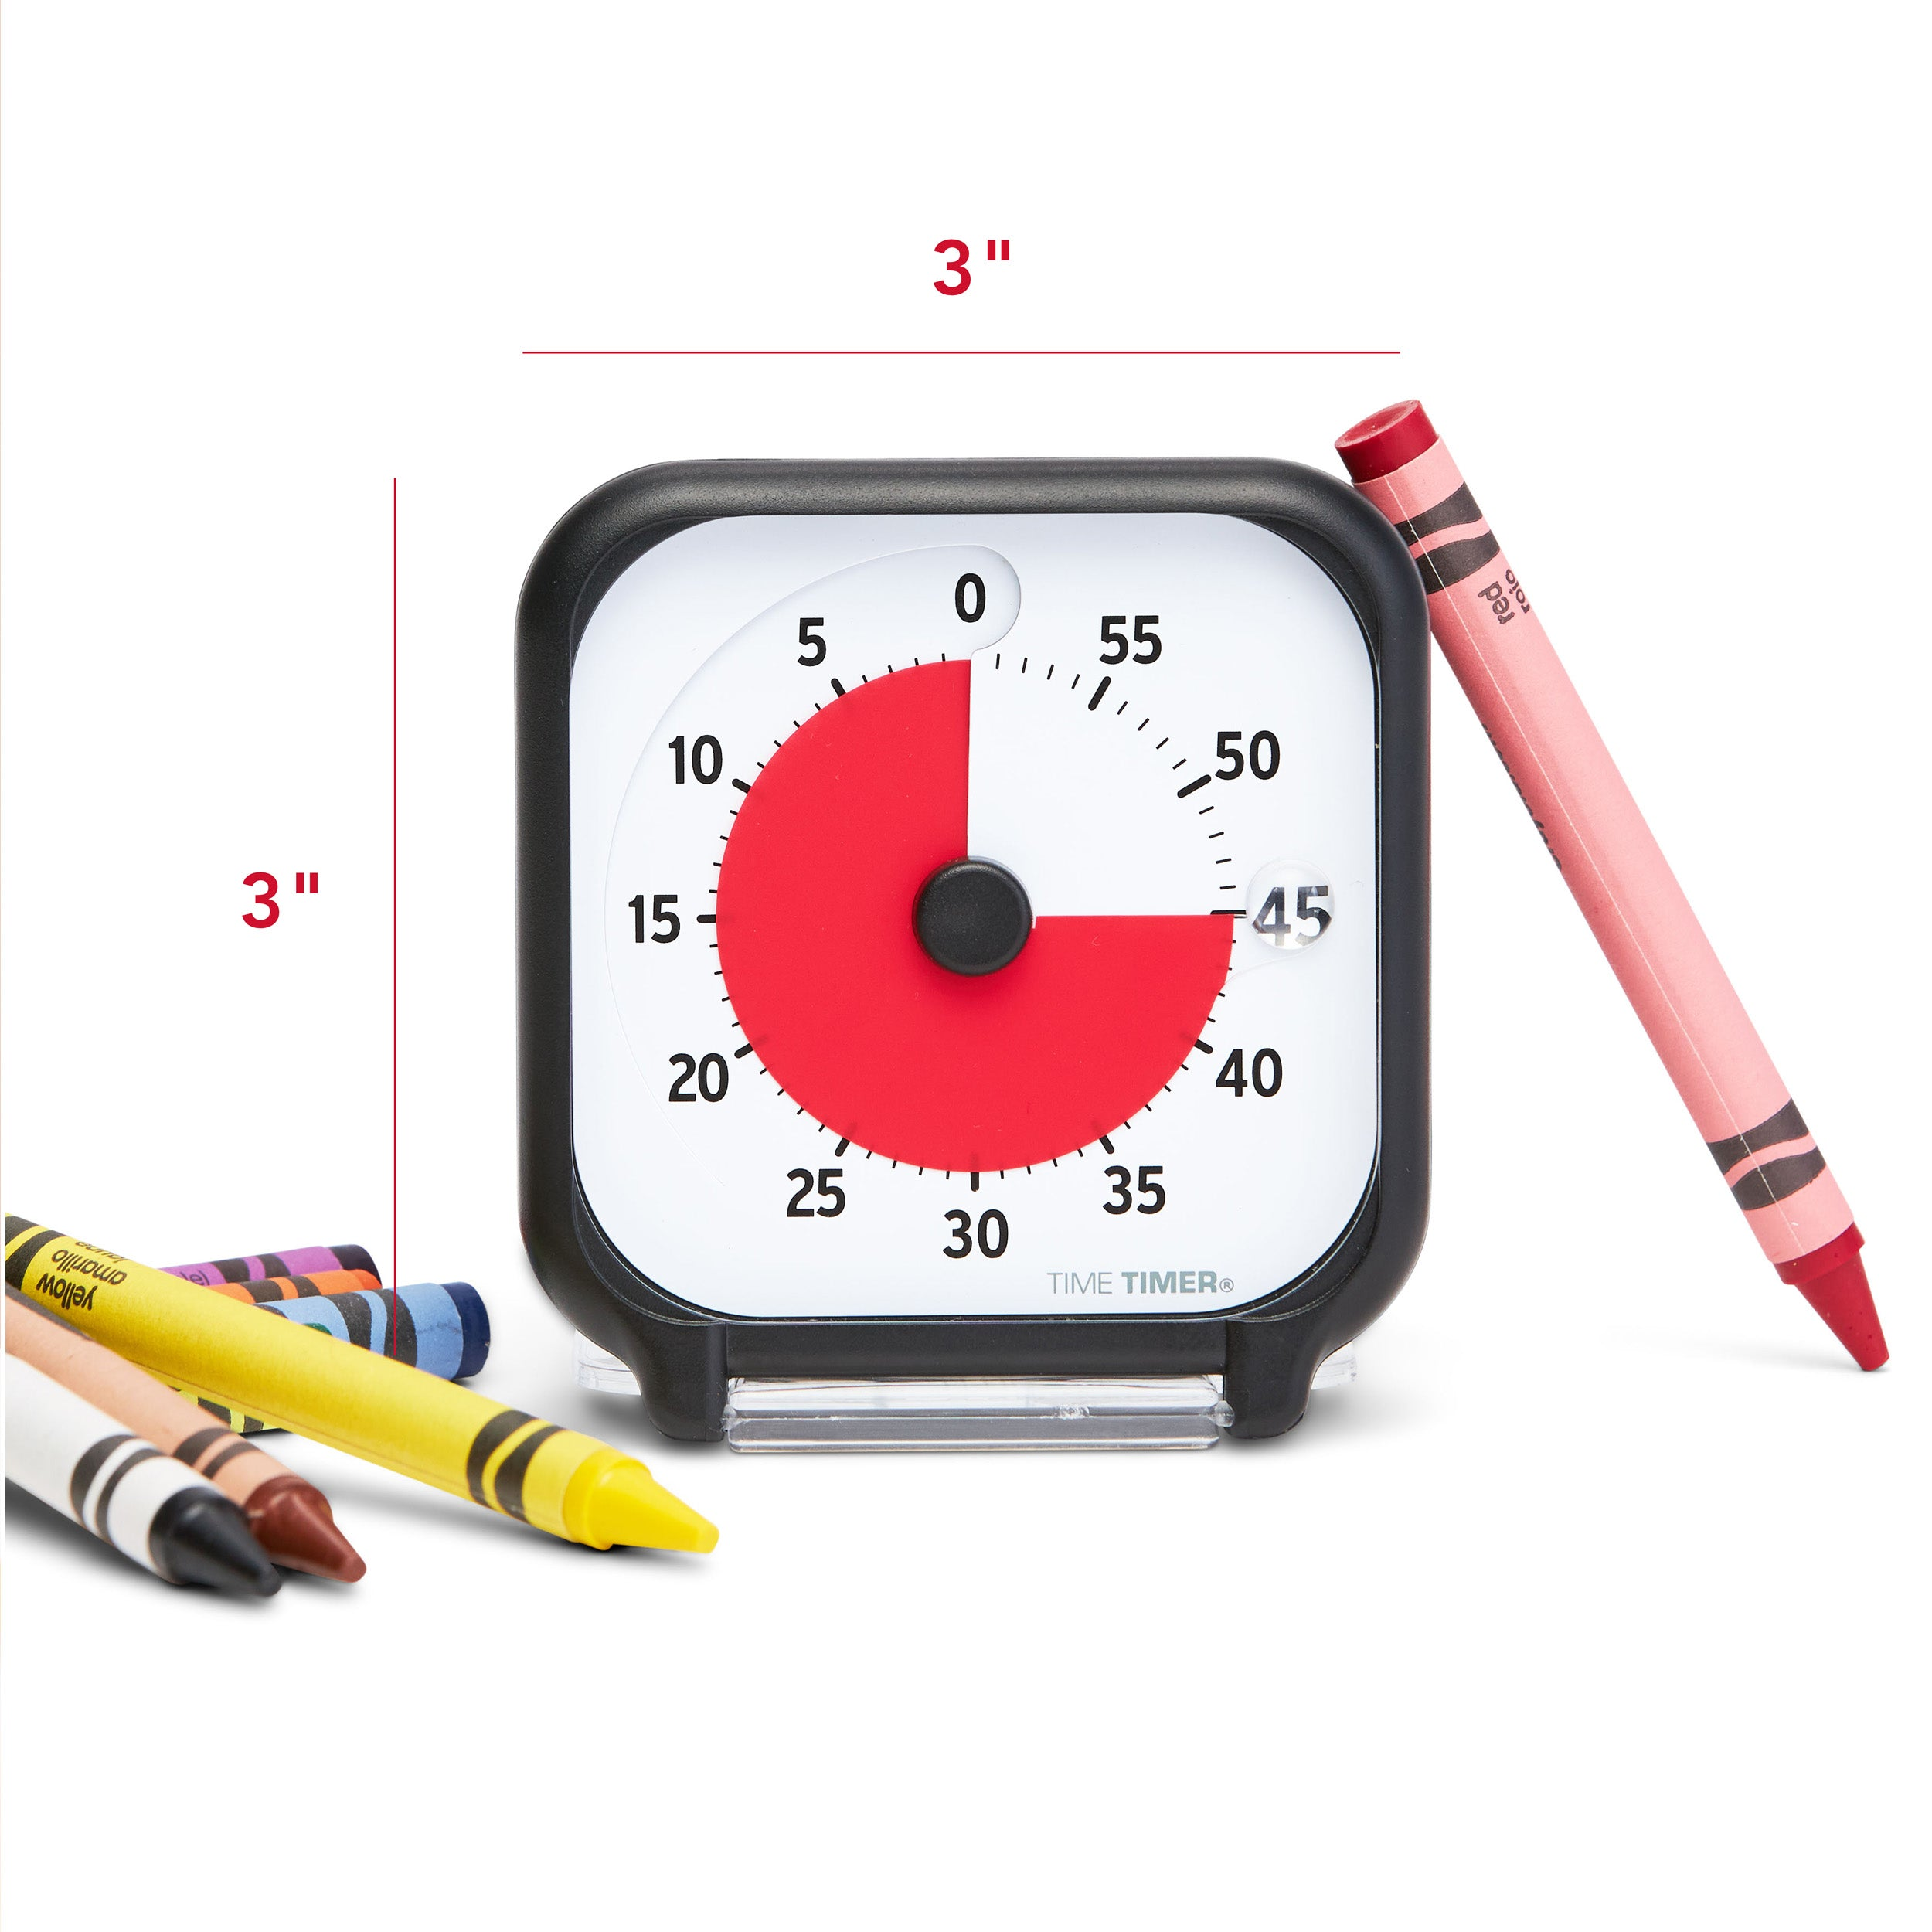 "Time Timer Original 3 inch Visual Timer - Pocket. The Time Timer 3-inch is a small potable size at 3x3"". Image shows timer sitting next to Crayons as a size reference."